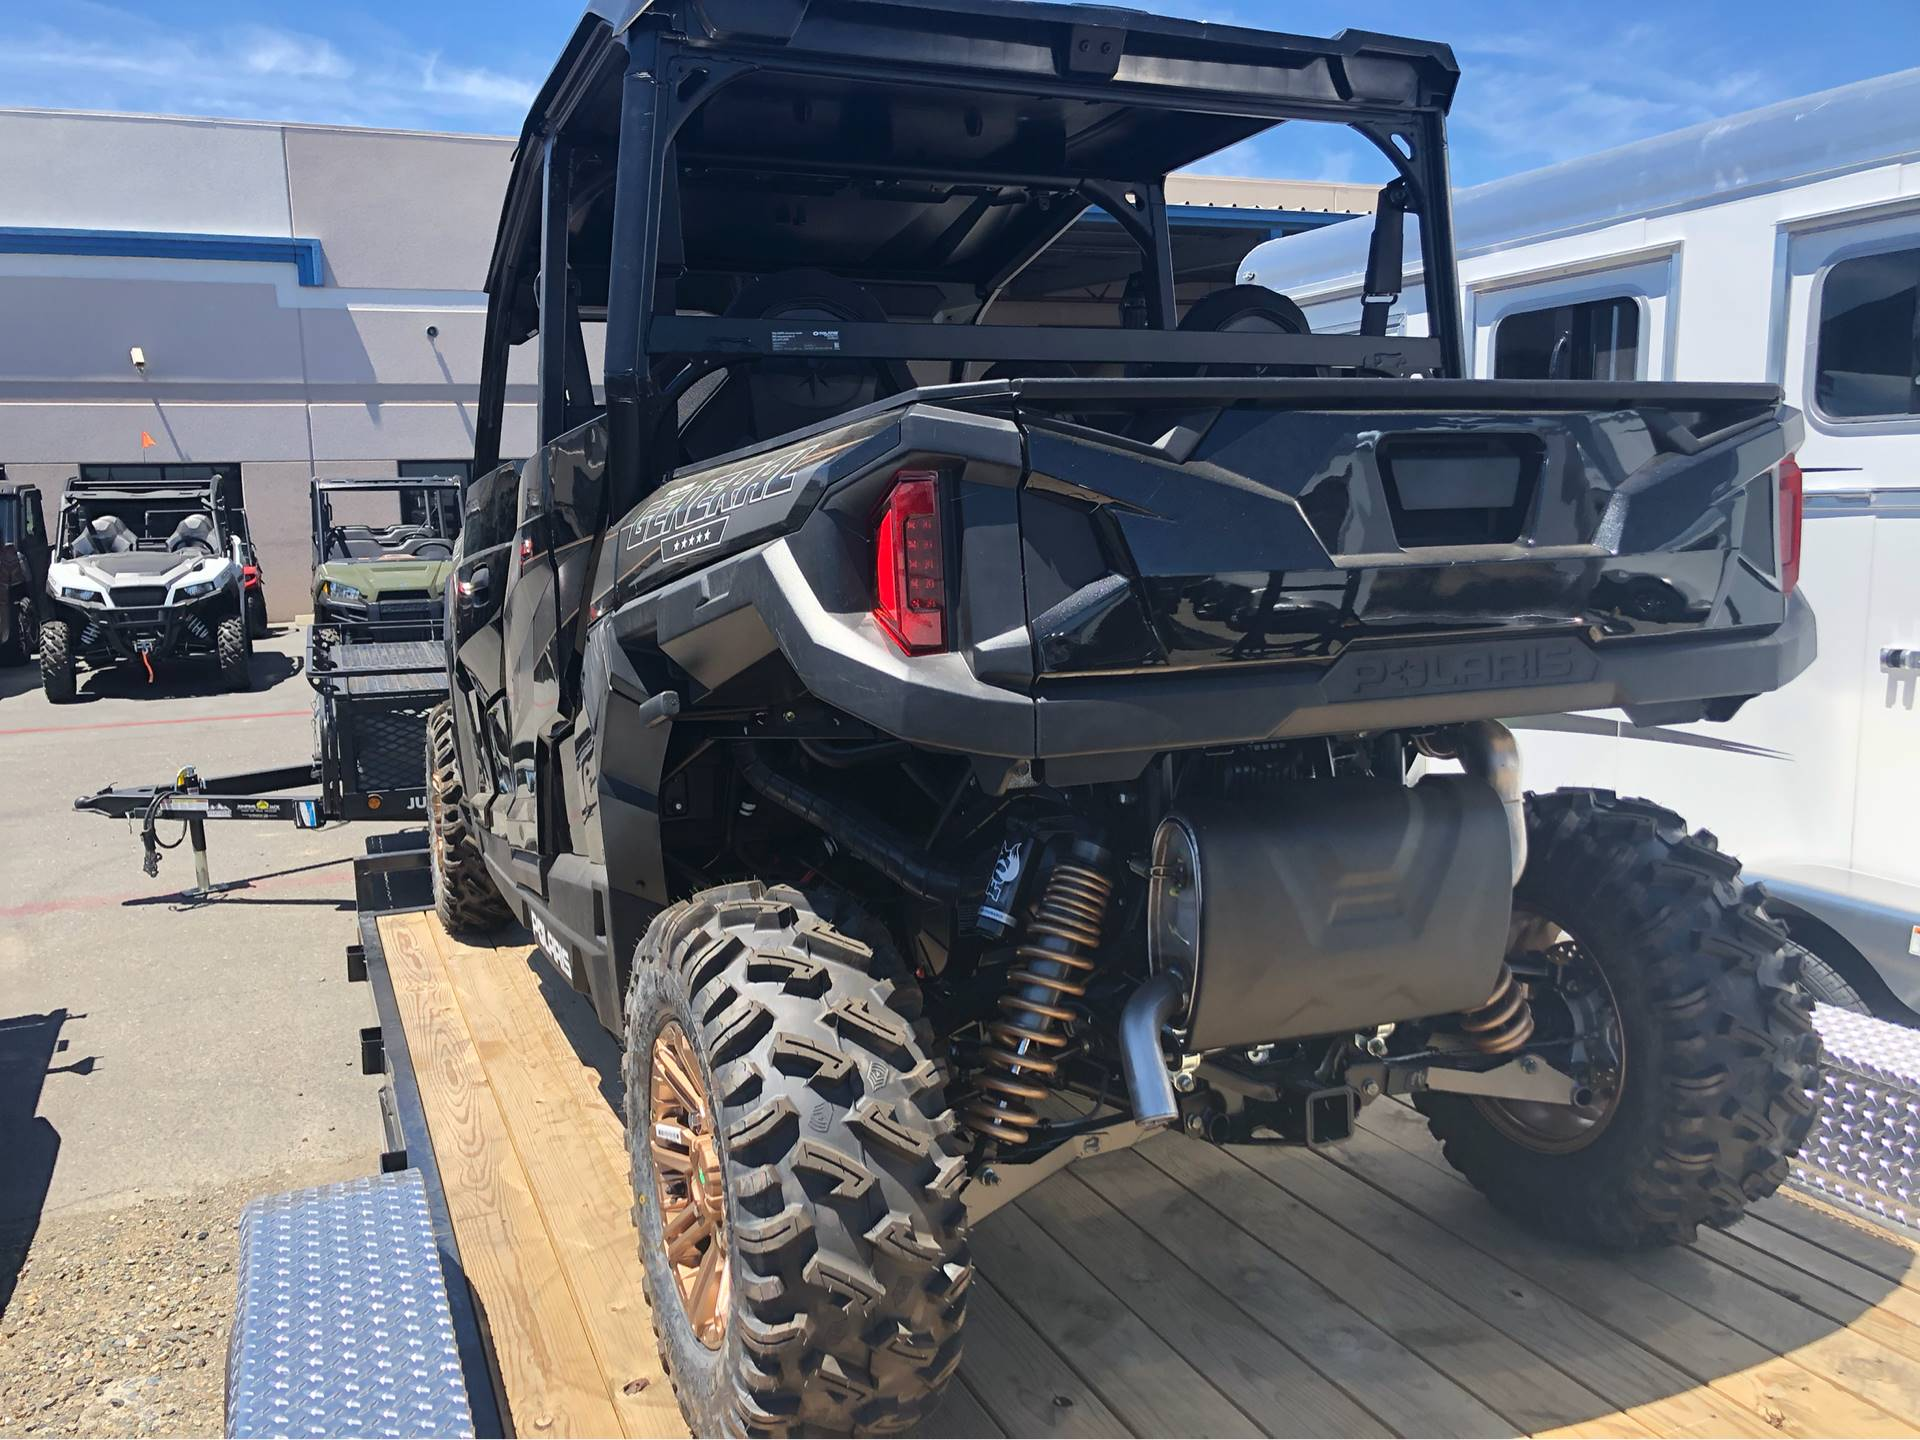 2019 Polaris General 4 1000 EPS Ride Command Edition in Paso Robles, California - Photo 5